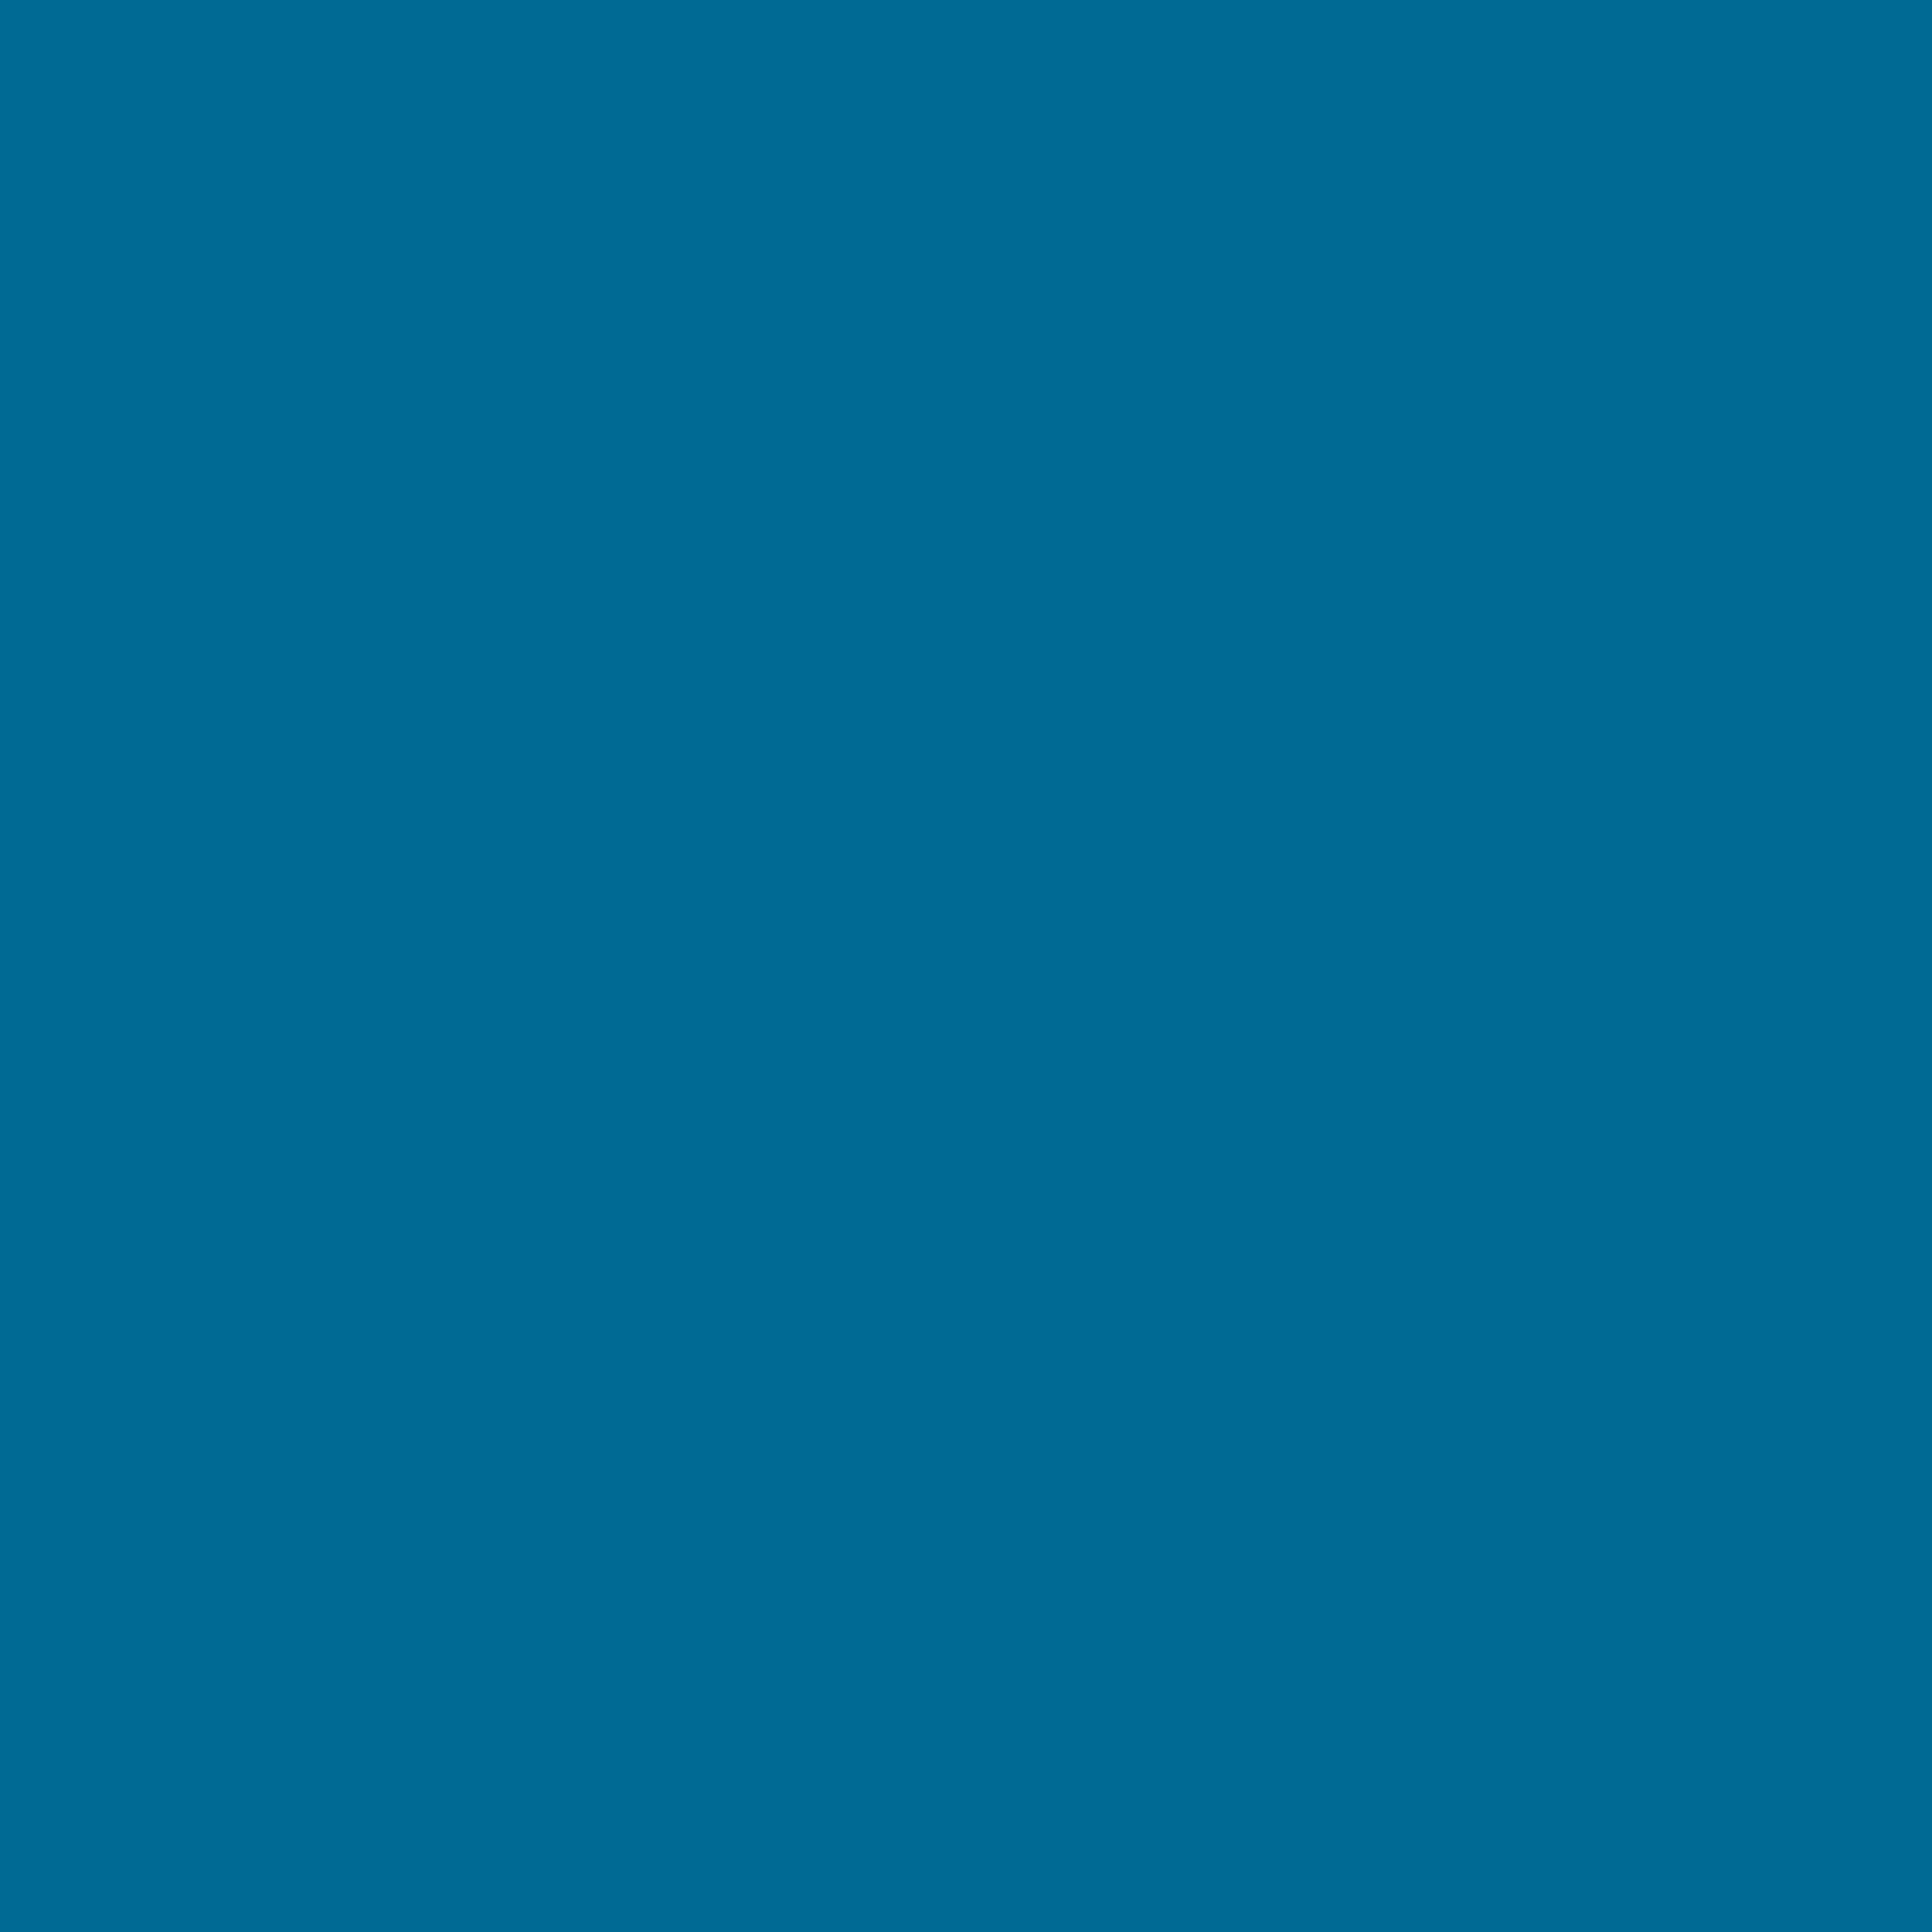 3600x3600 Sea Blue Solid Color Background